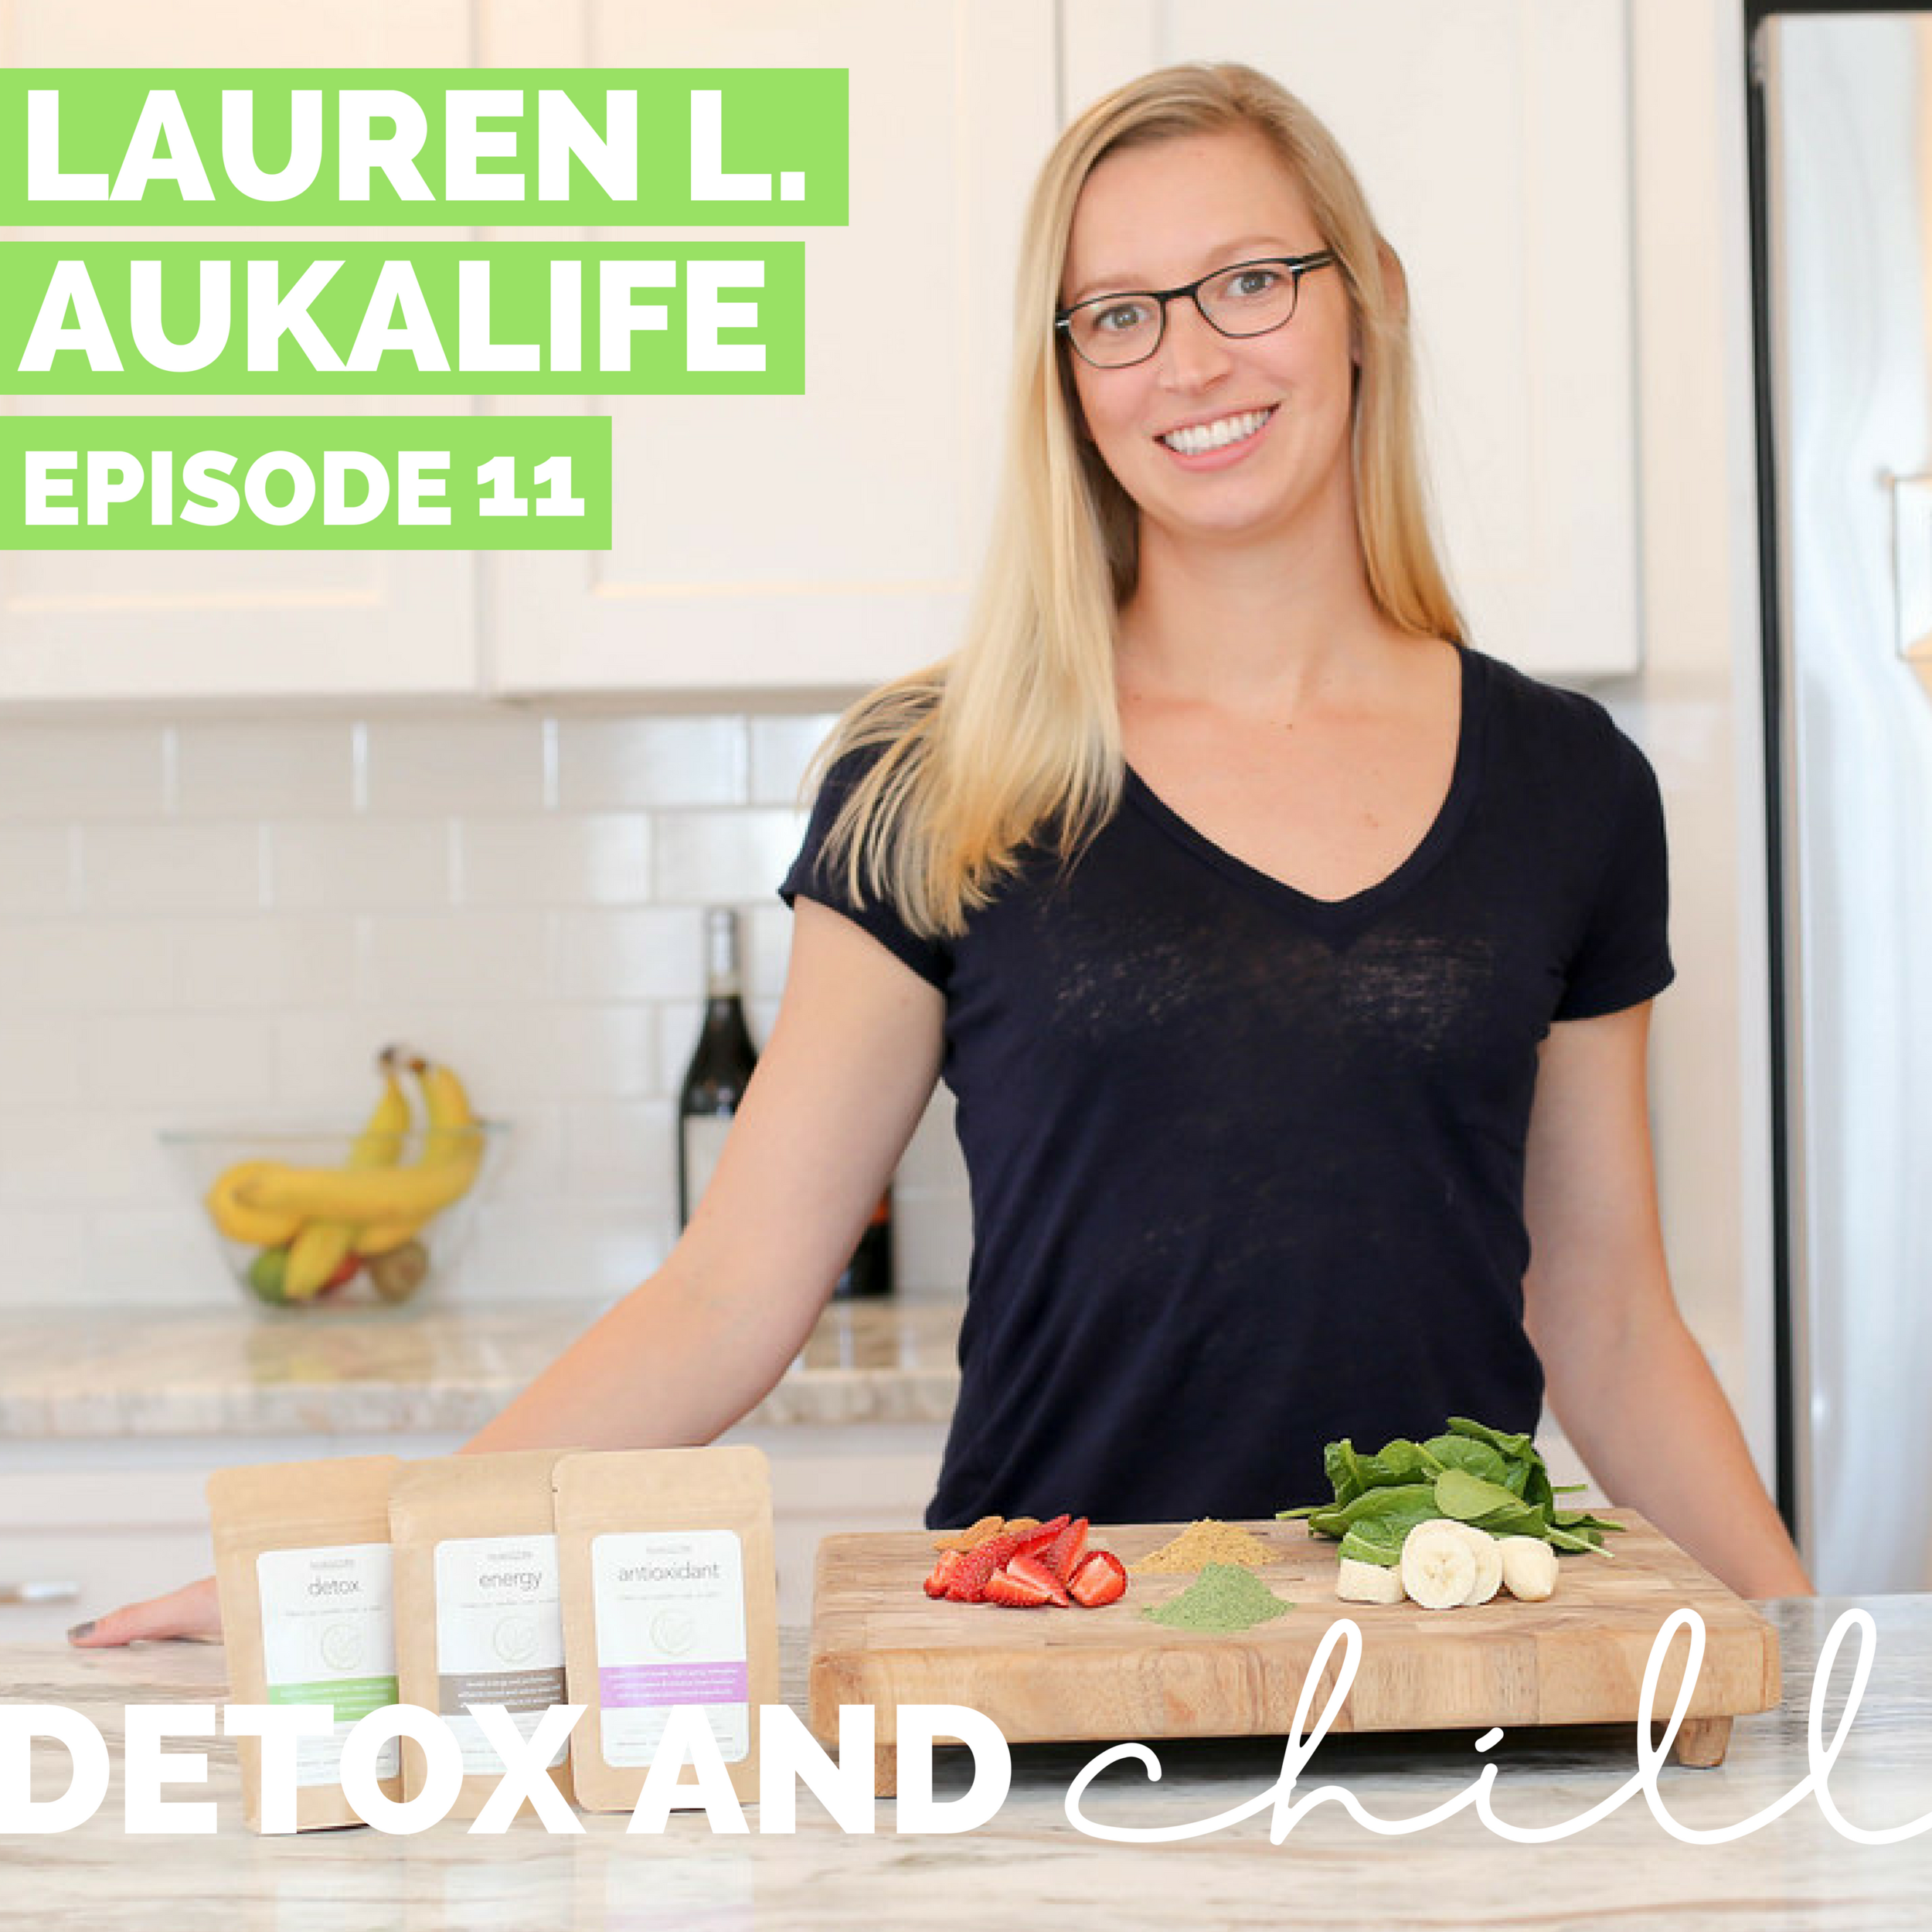 Episode #11: Lauren Lampert // Founder & CEO of AukaLife // How to Balance a Full-Time Job & A Successful Side Hustle  - HAPPY FRIDAY!! You  may be thinking...WAIT...you usually release episodes on Mondays. WELL, we are going ALL out in August, and releasing *two* episodes per week.  We are so excited to share even more content with you all, with all of the amazing peeps we've had the honor of interviewing. Including, the lovely Lauren from AukaLife.If you haven't heard of AukaLife, it is an amazing company that provides custom and personalized superfood blends to enhance your diet and promote healthy living. We don't know about you guys, but we get overwhelmed sometimes with allllll the products available to put into you morning smoothie.  Lauren takes the guesswork completely out of the equation, and does all the blending/combining work for you.In this episode we talk about....-How Lauren balances her full-time job in advertising, while running her business and HANDMAKING all of her products on the side #superwoman;-How she came up with the name for her brand;-How she manages to practice self-care in the midst of everything;-How she manages finances while running her business;And SO much more! Lauren was so generous to offer D&C listeners 20% off of her products using code DETOXCHILL20 at checkout.Link to Aukalife: http://www.aukalife.com/Instagram: @aukalifeFacebook: AukalifeWe both *love* the detox blend and throw it into our smoothies most mornings.  Sometimes we mix the energy blend into oatmeal for a satiating and warming breakfast.If you check it out, let us know!!Xoxo,Meg & Beck